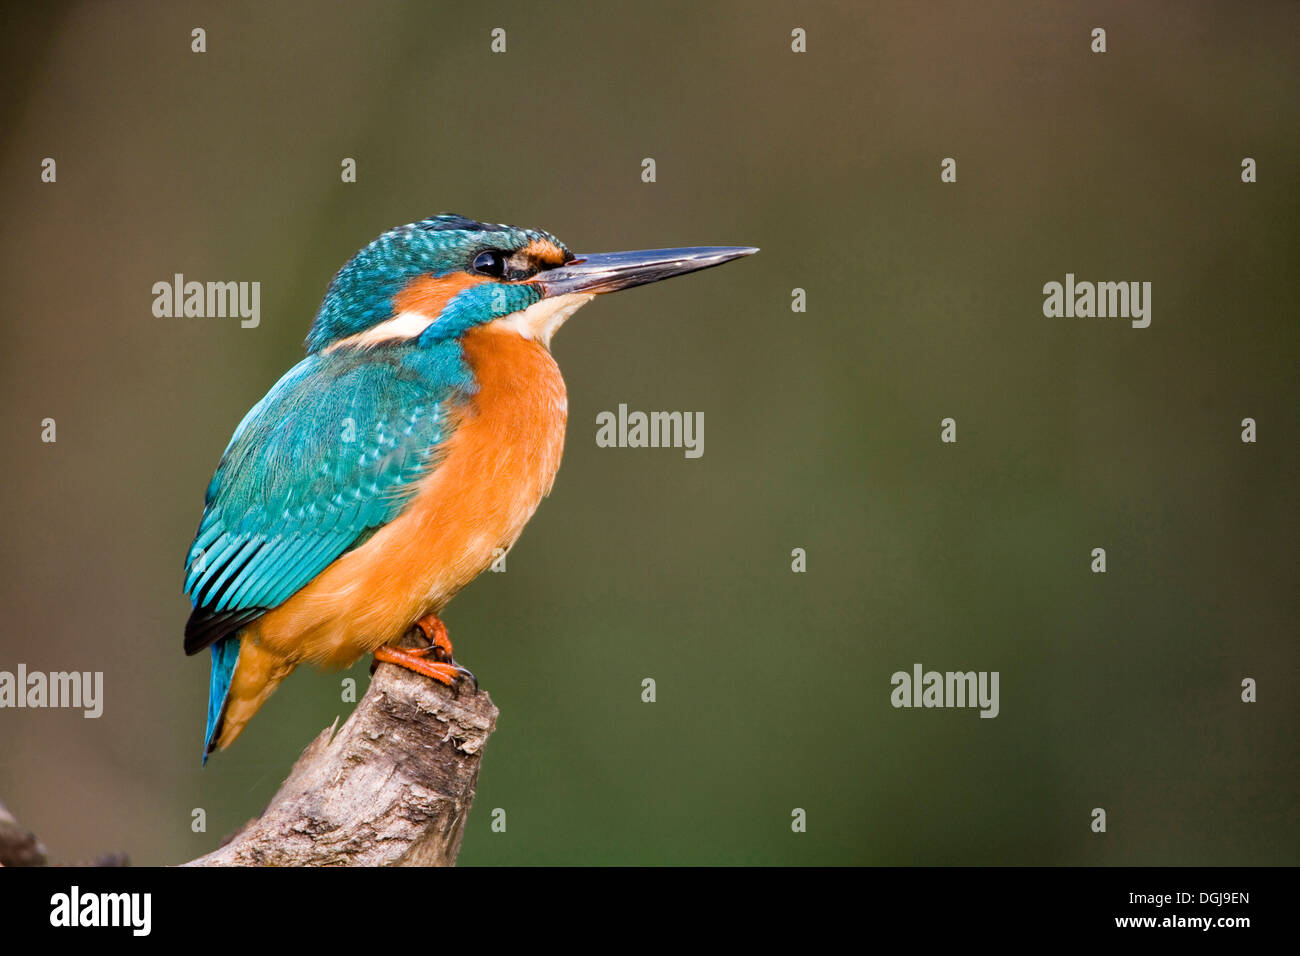 A kingfisher perching on a branch. - Stock Image